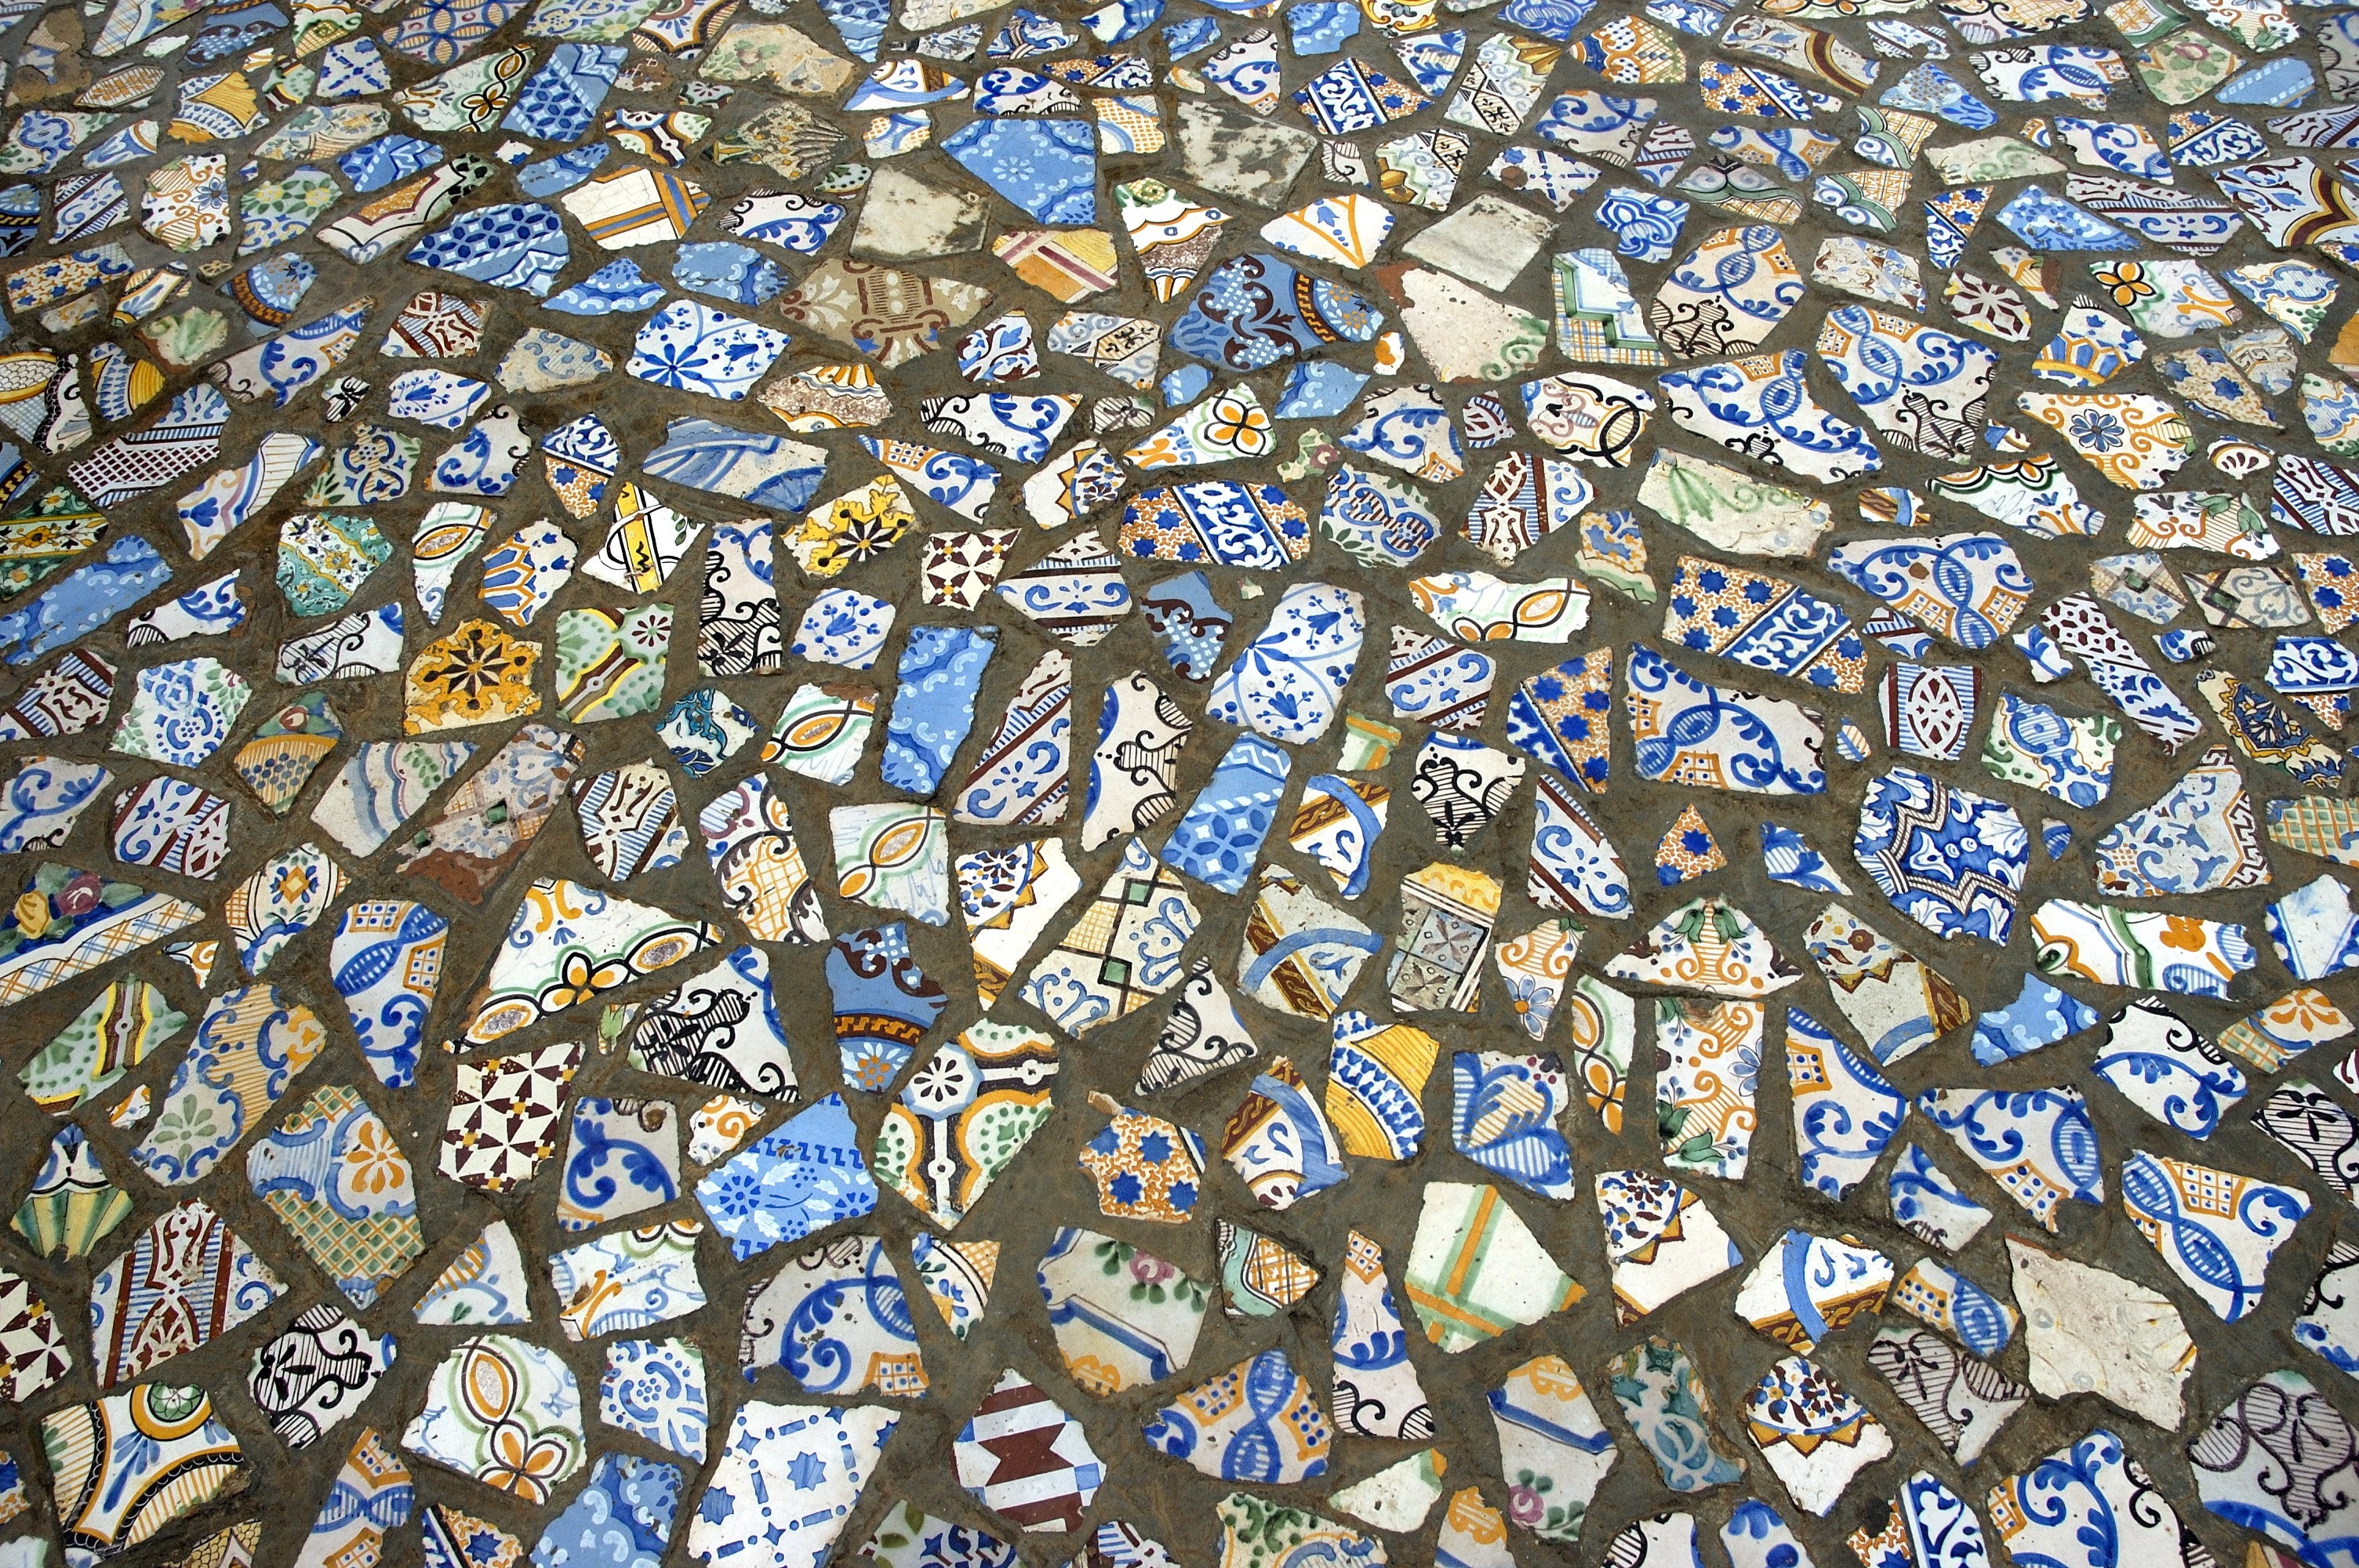 Image of a tiled mosaic floor